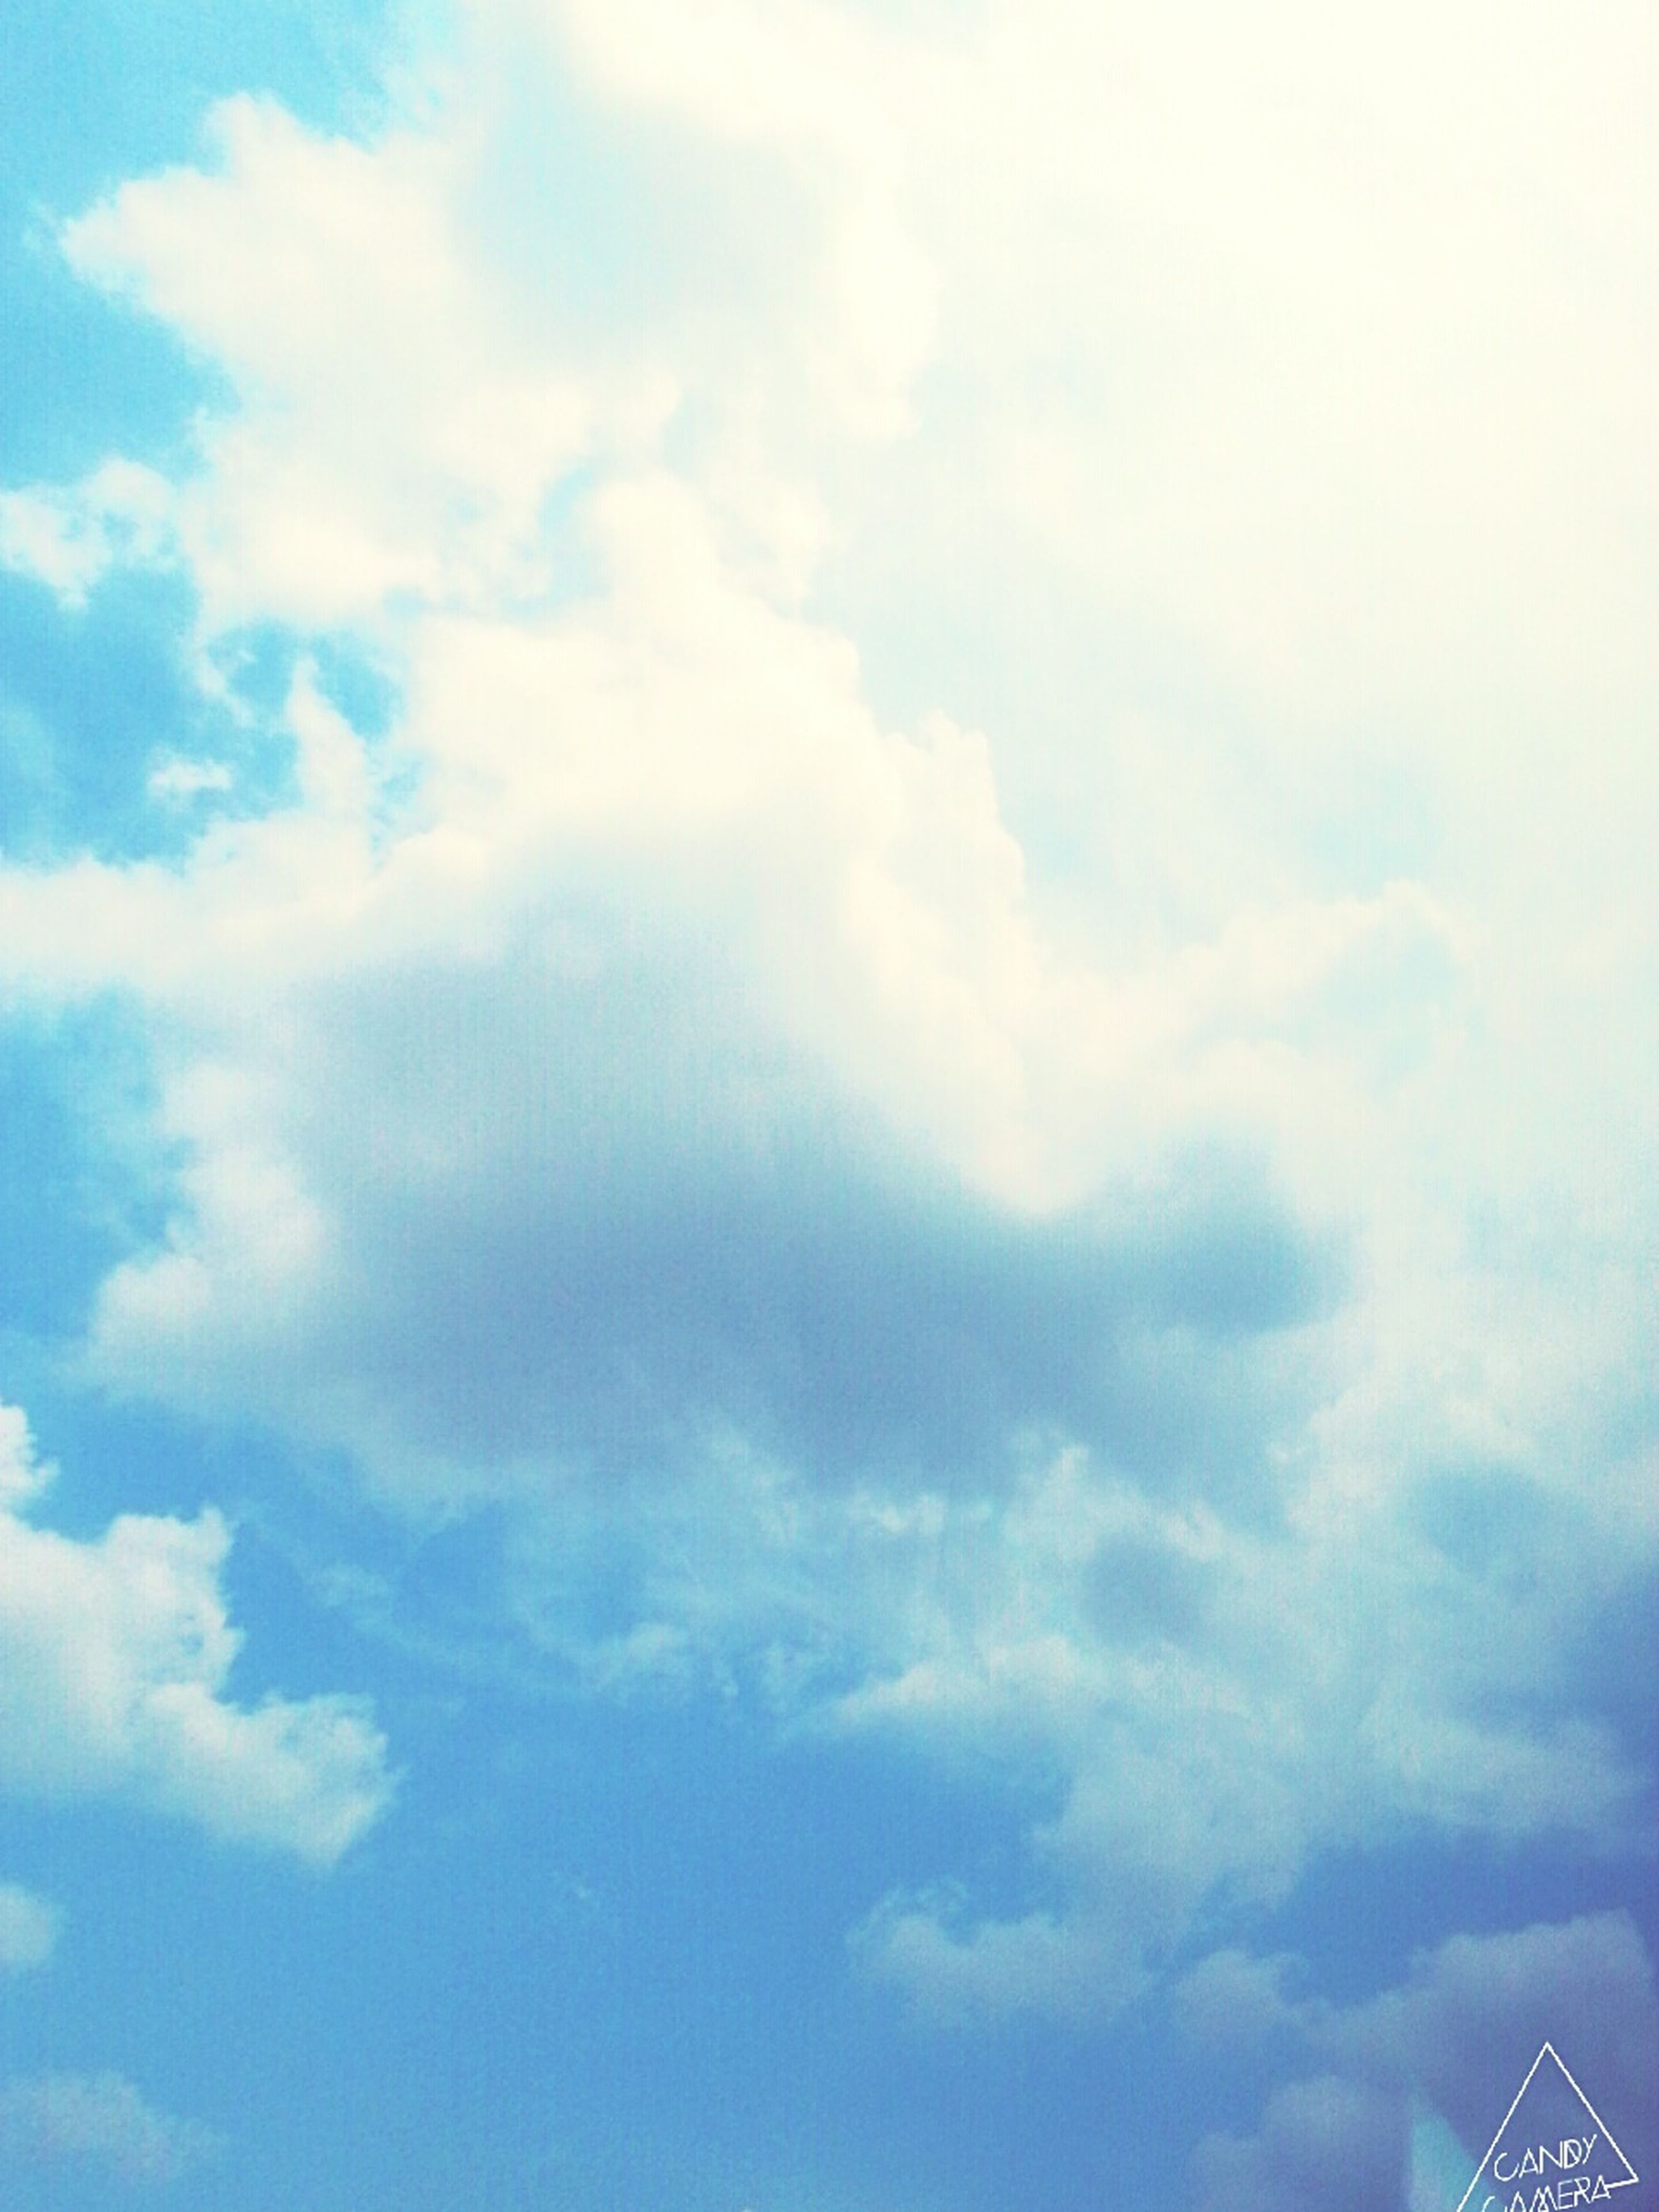 low angle view, sky, cloud - sky, cloudy, beauty in nature, blue, nature, cloud, sky only, backgrounds, tranquility, scenics, day, cloudscape, outdoors, full frame, no people, white color, high section, tranquil scene